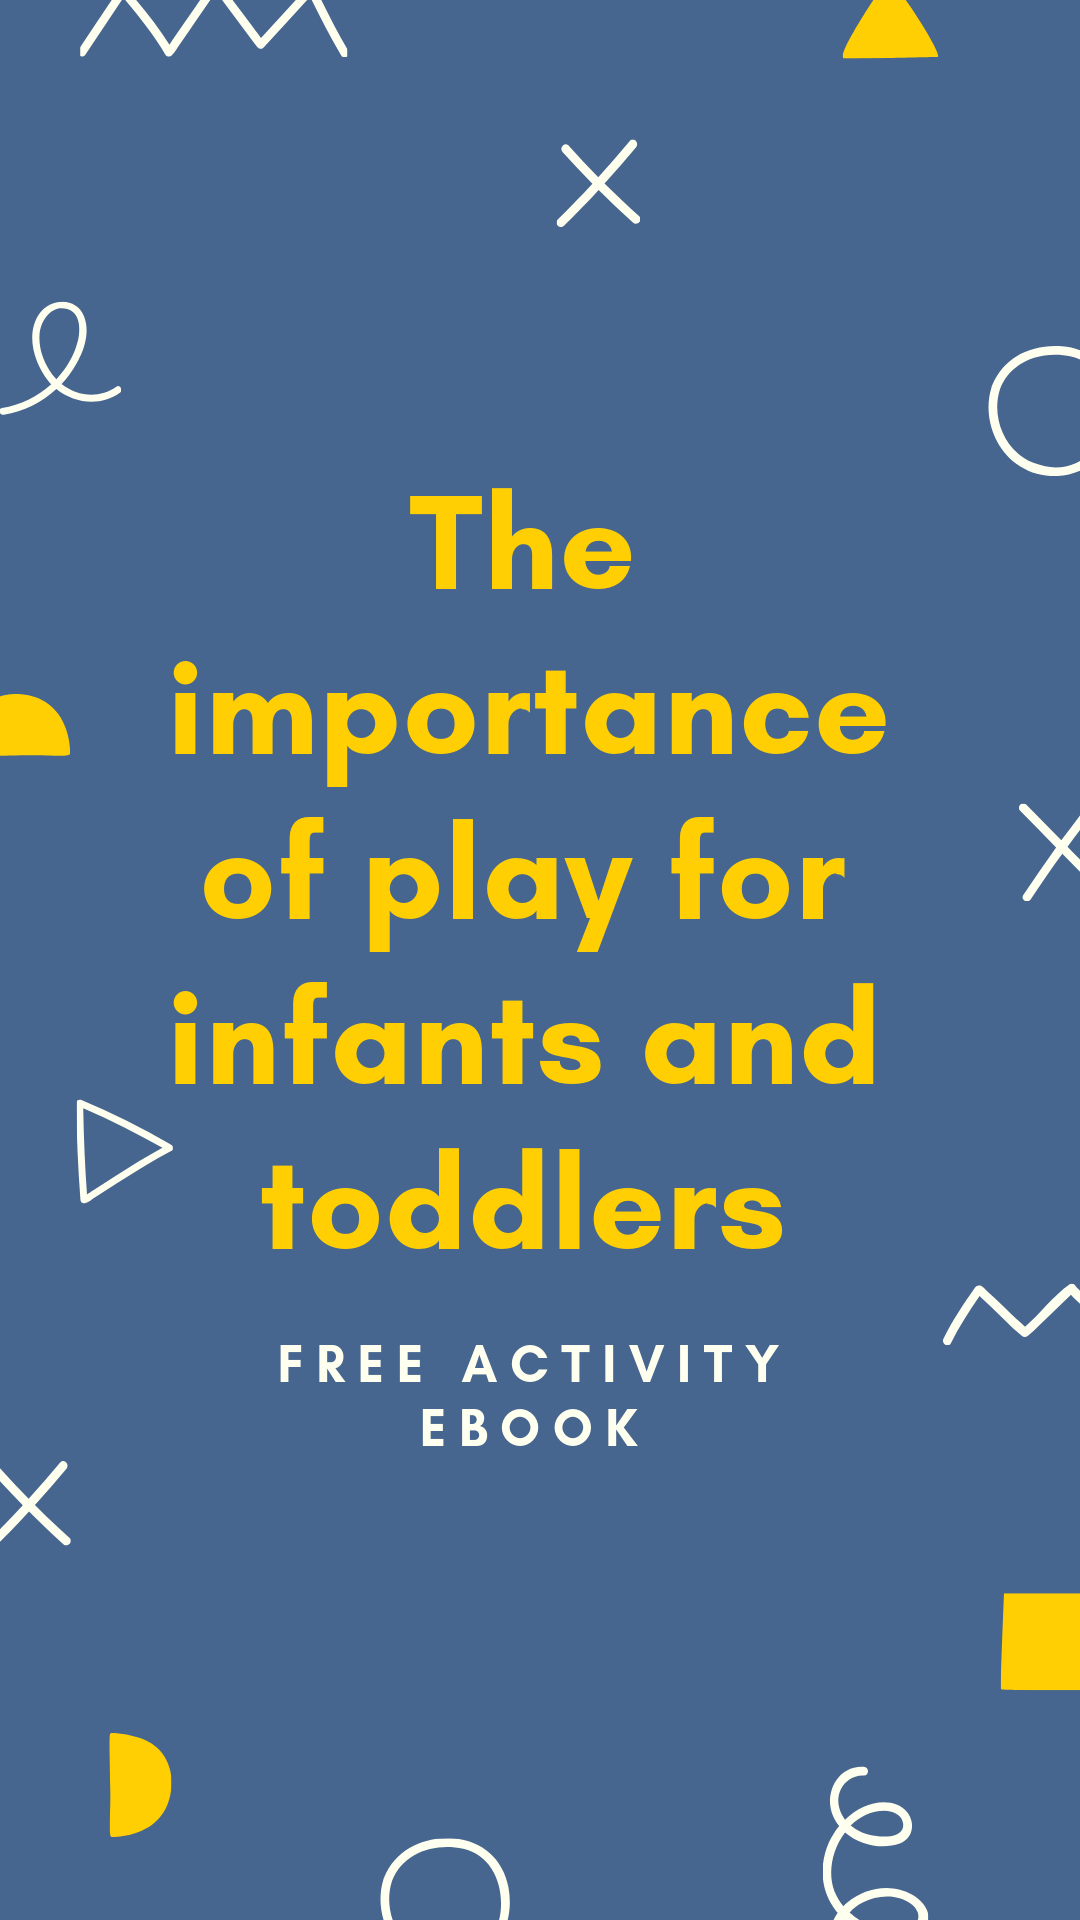 The Importance Of Play Plus Free Activity Ebook